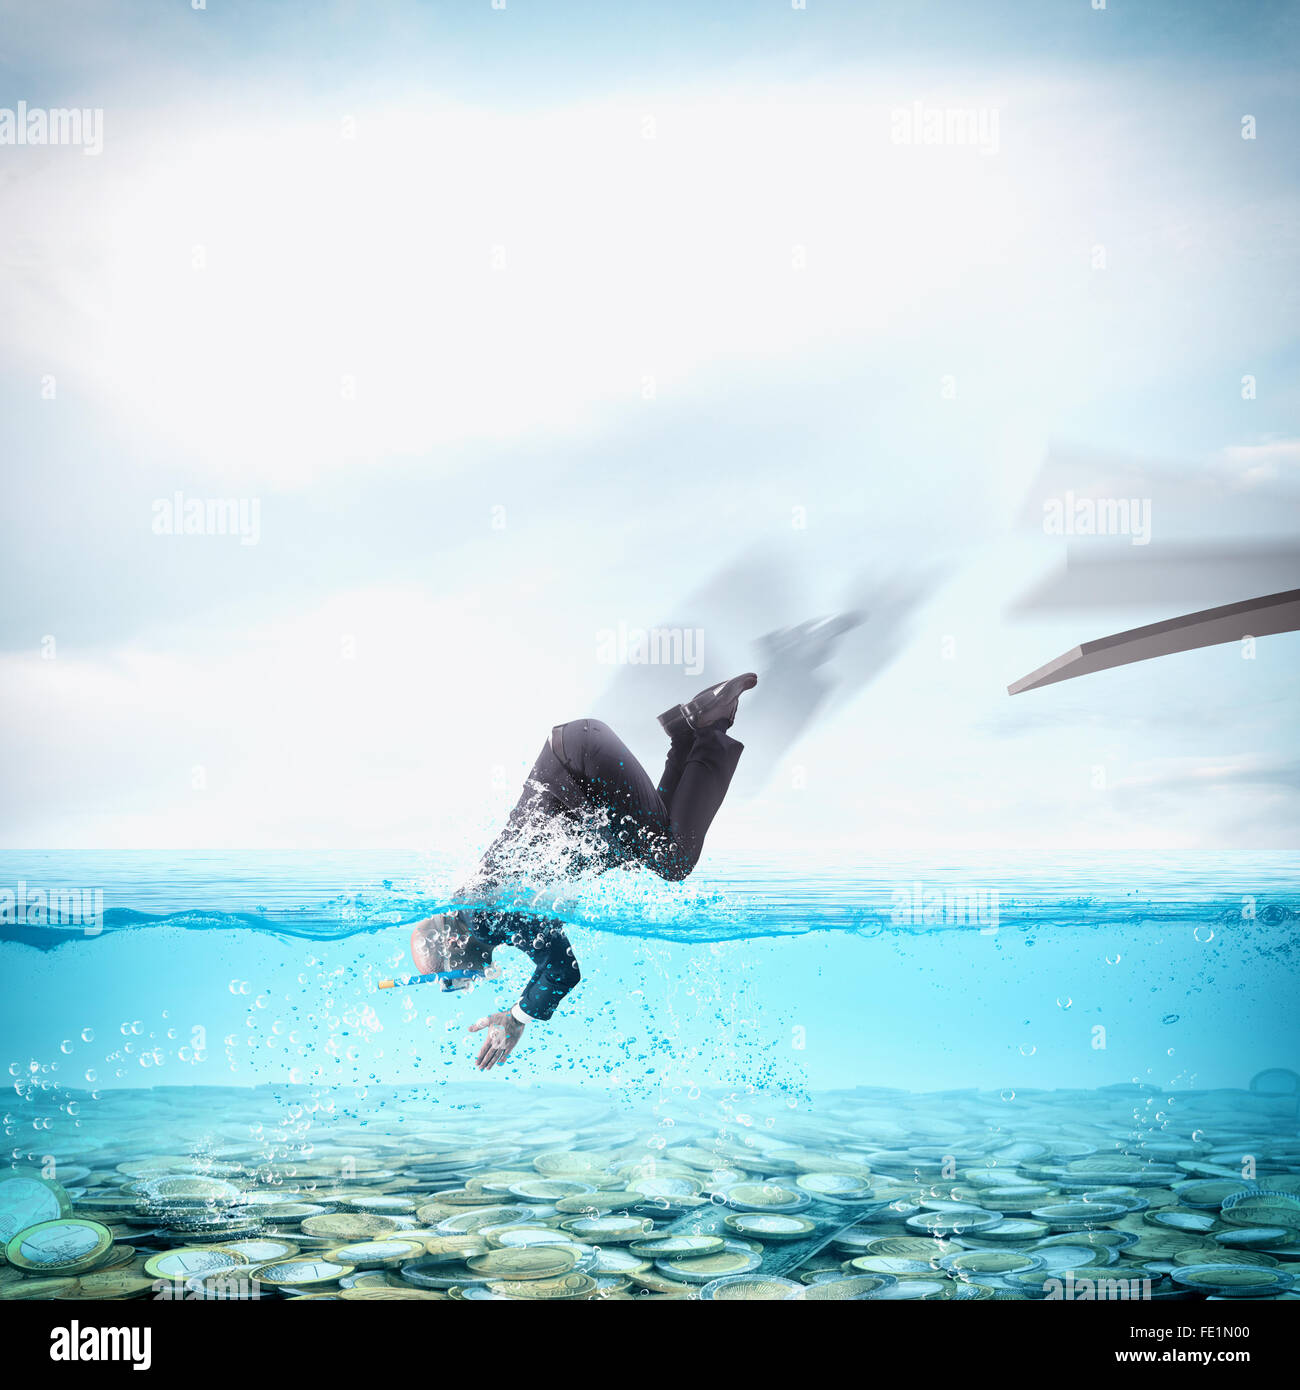 Wealth pool - Stock Image